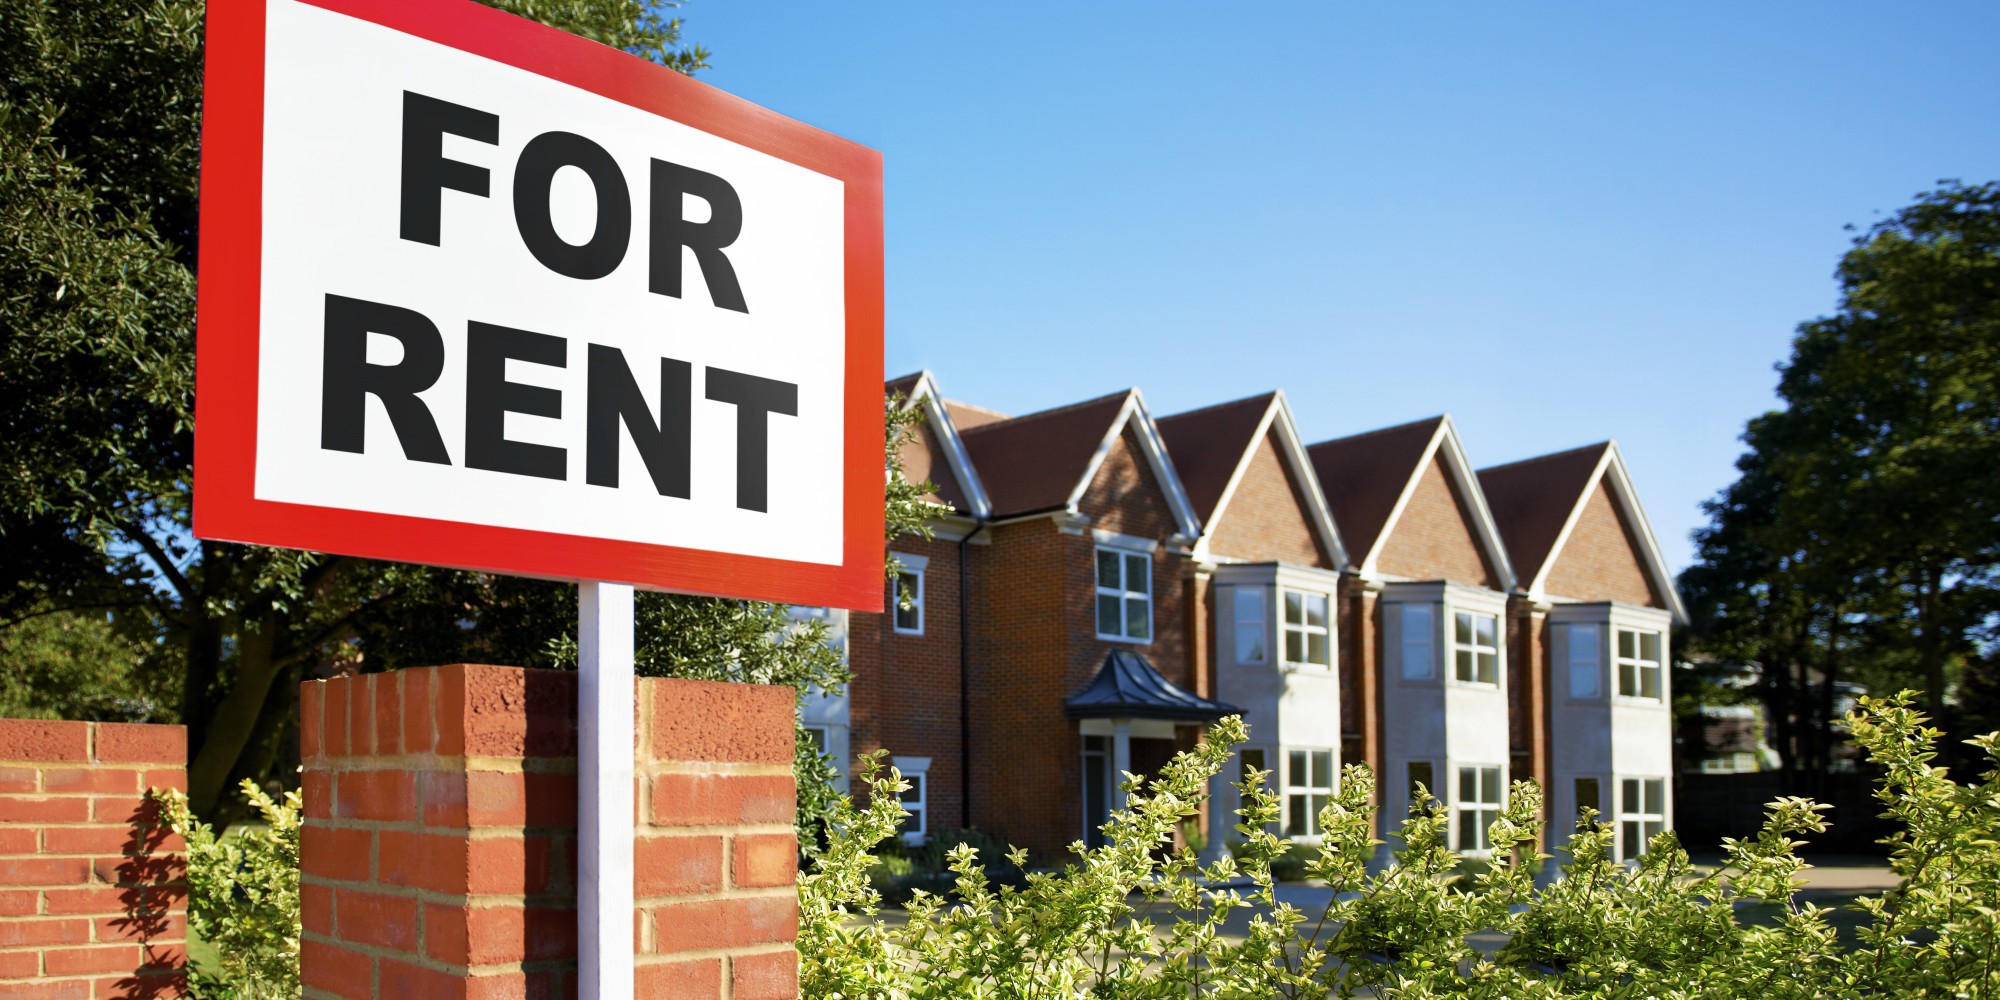 Rental prices in the UK are rising but at a slower rate than inflation in 2017